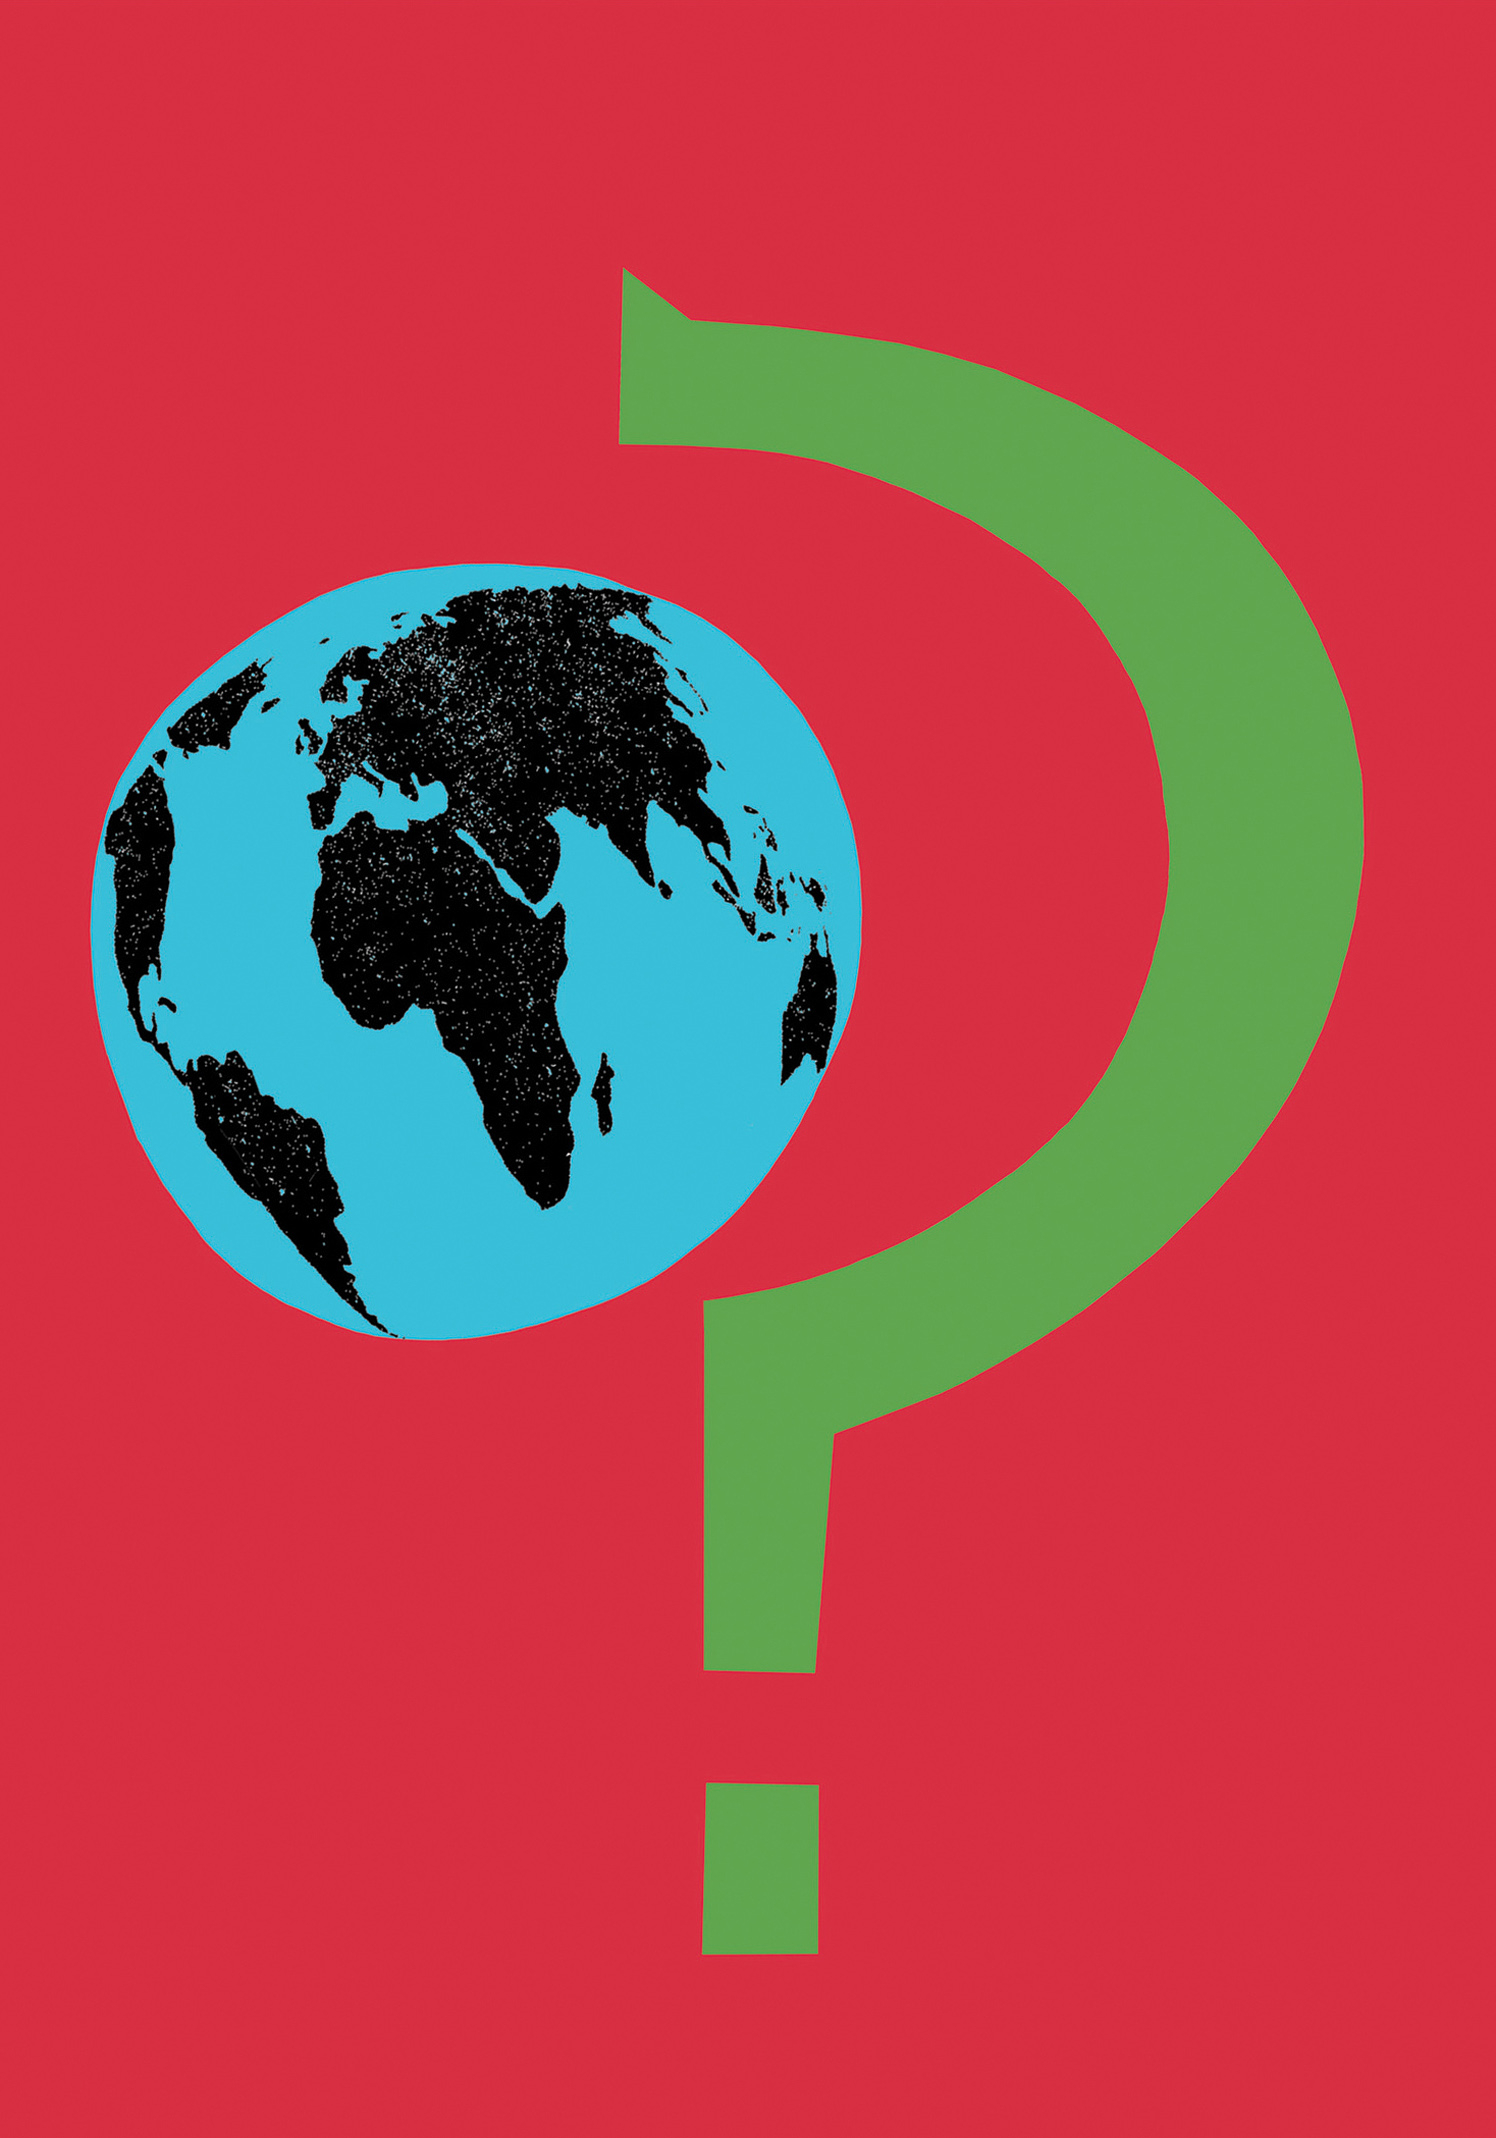 Global Questions The Economist